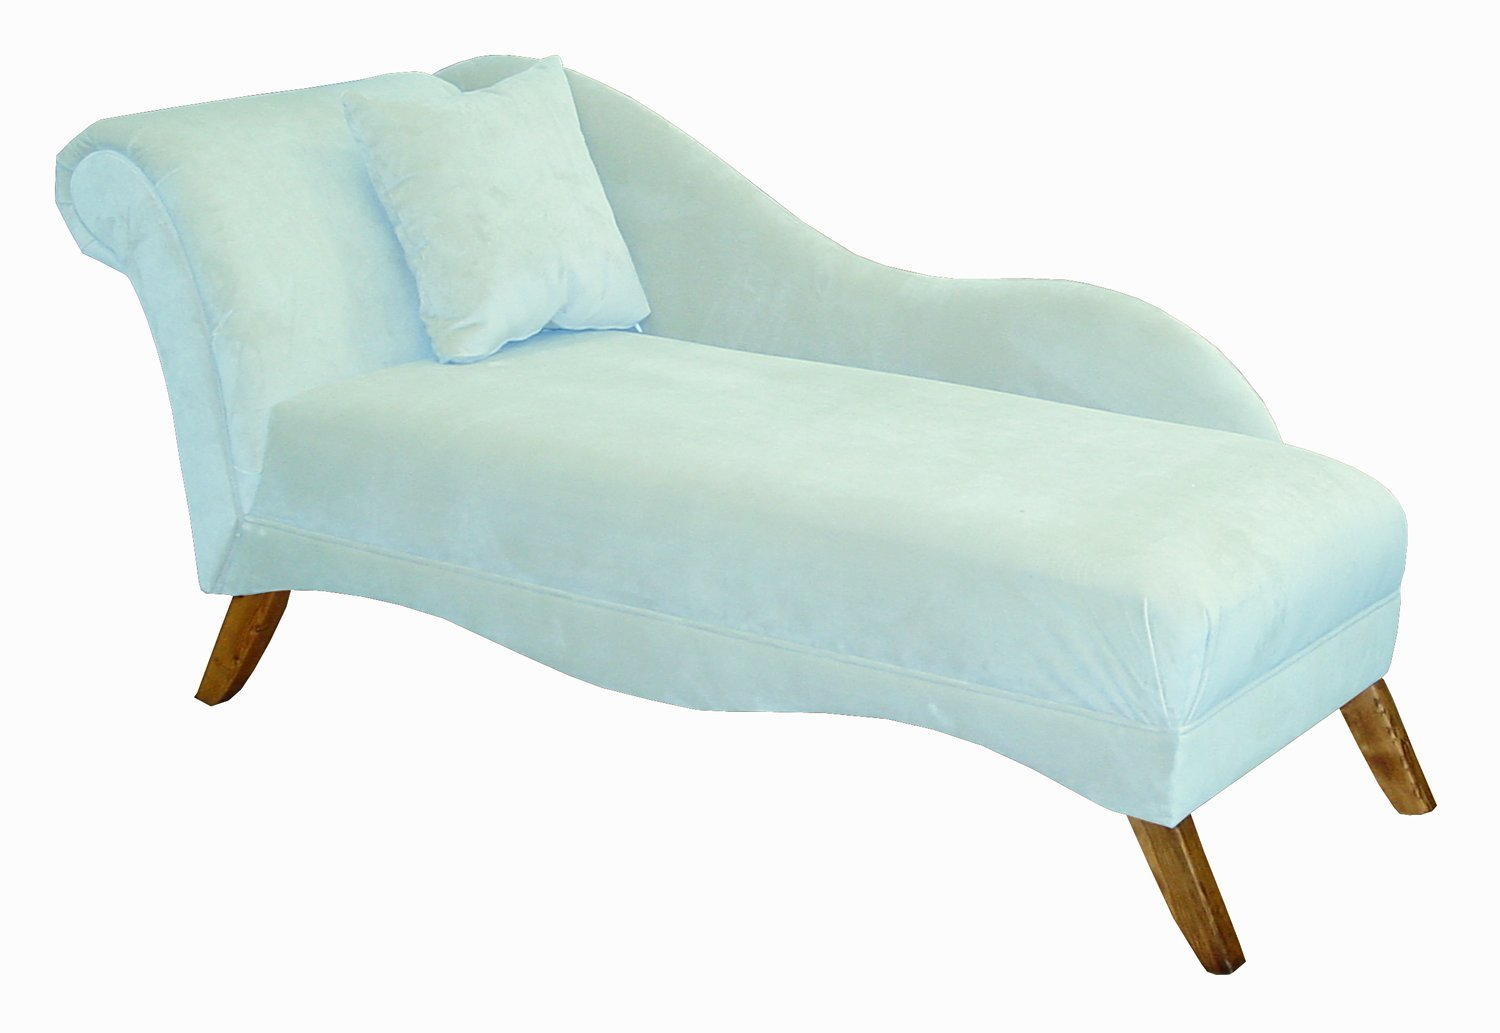 Amazon.com Isabella Single Arm Chaise Lounge by Skyline Furniture in Pool Blue Velvet Kitchen u0026 Dining  sc 1 st  Amazon.com : blue velvet chaise lounge - Sectionals, Sofas & Couches